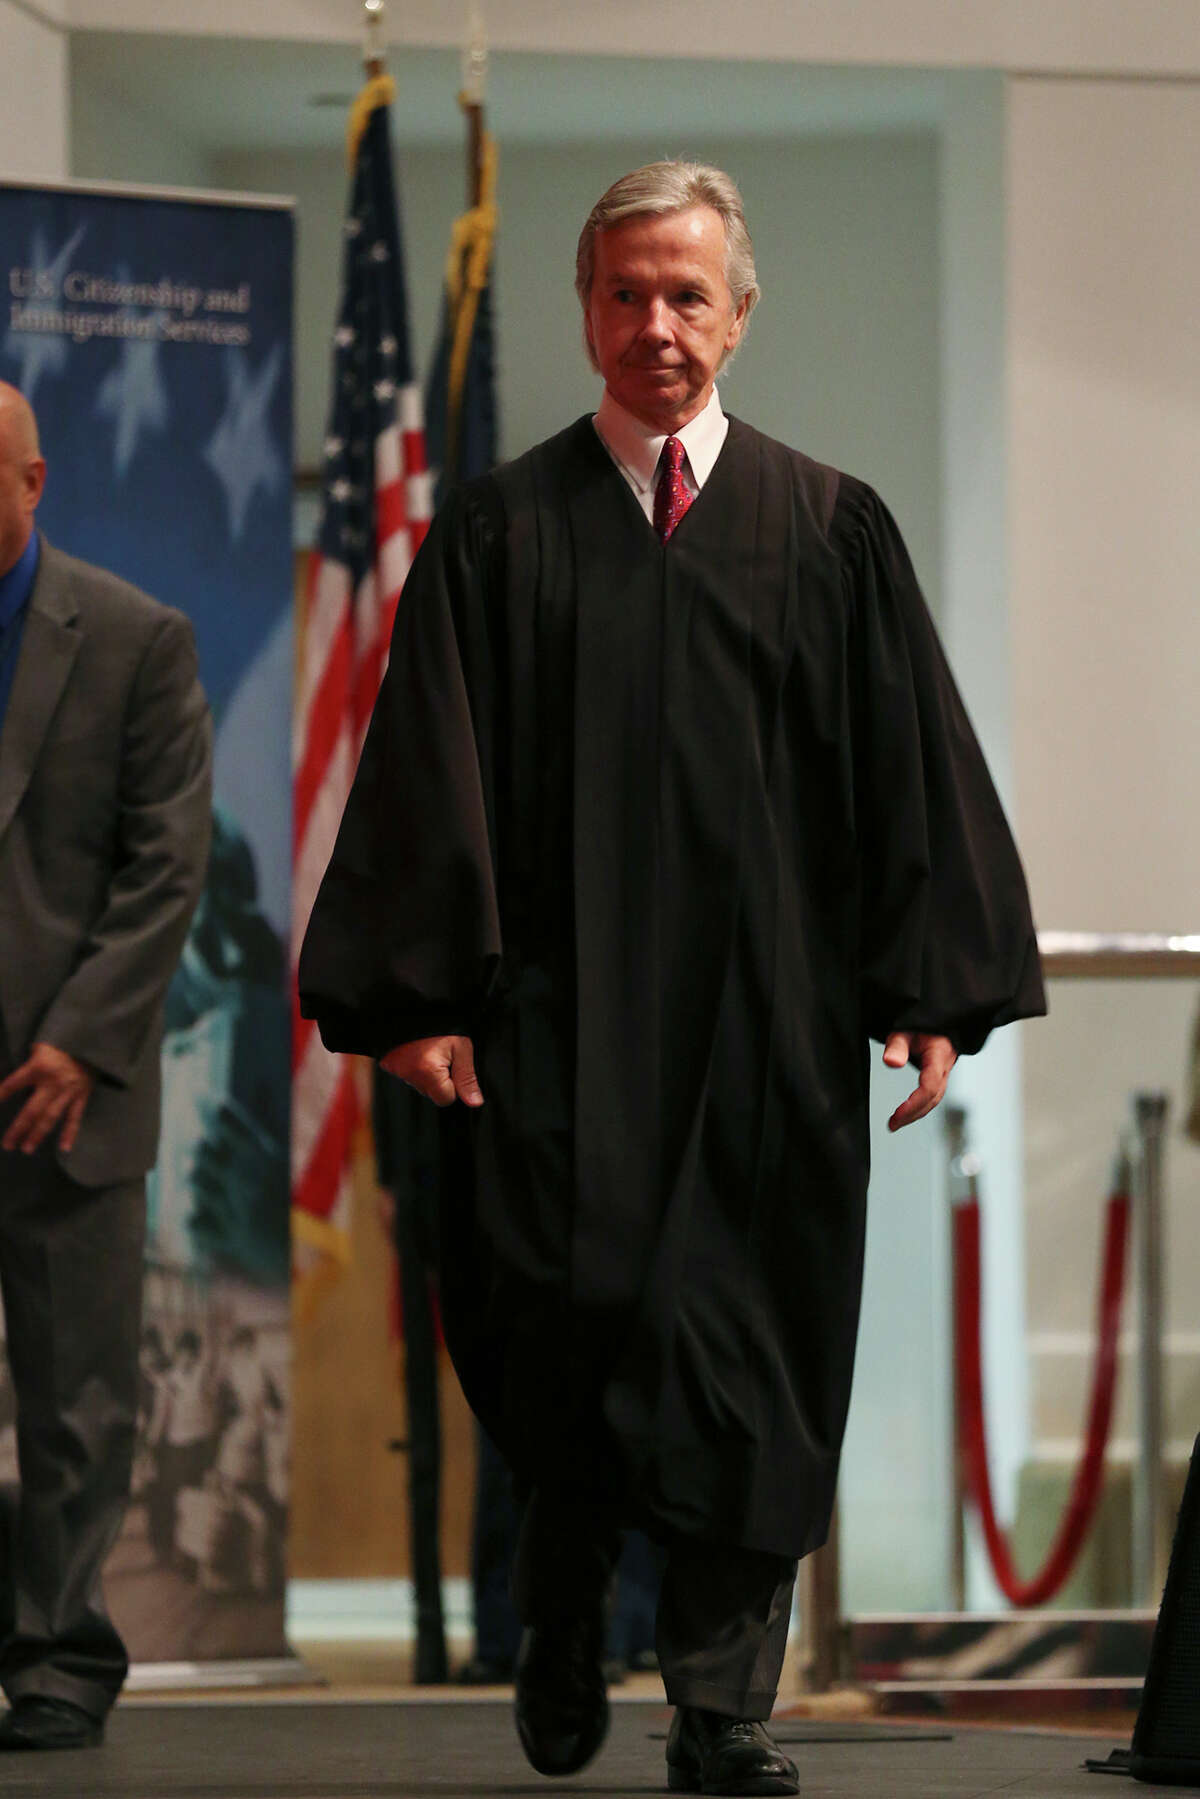 In this file photo U.S. Magistrate Judge John W. Primomo arrives for one of two naturalization ceremonies at the Edgewood Theatre of Performing Arts for a naturalization ceremony, Thursday, August 20, 2015.